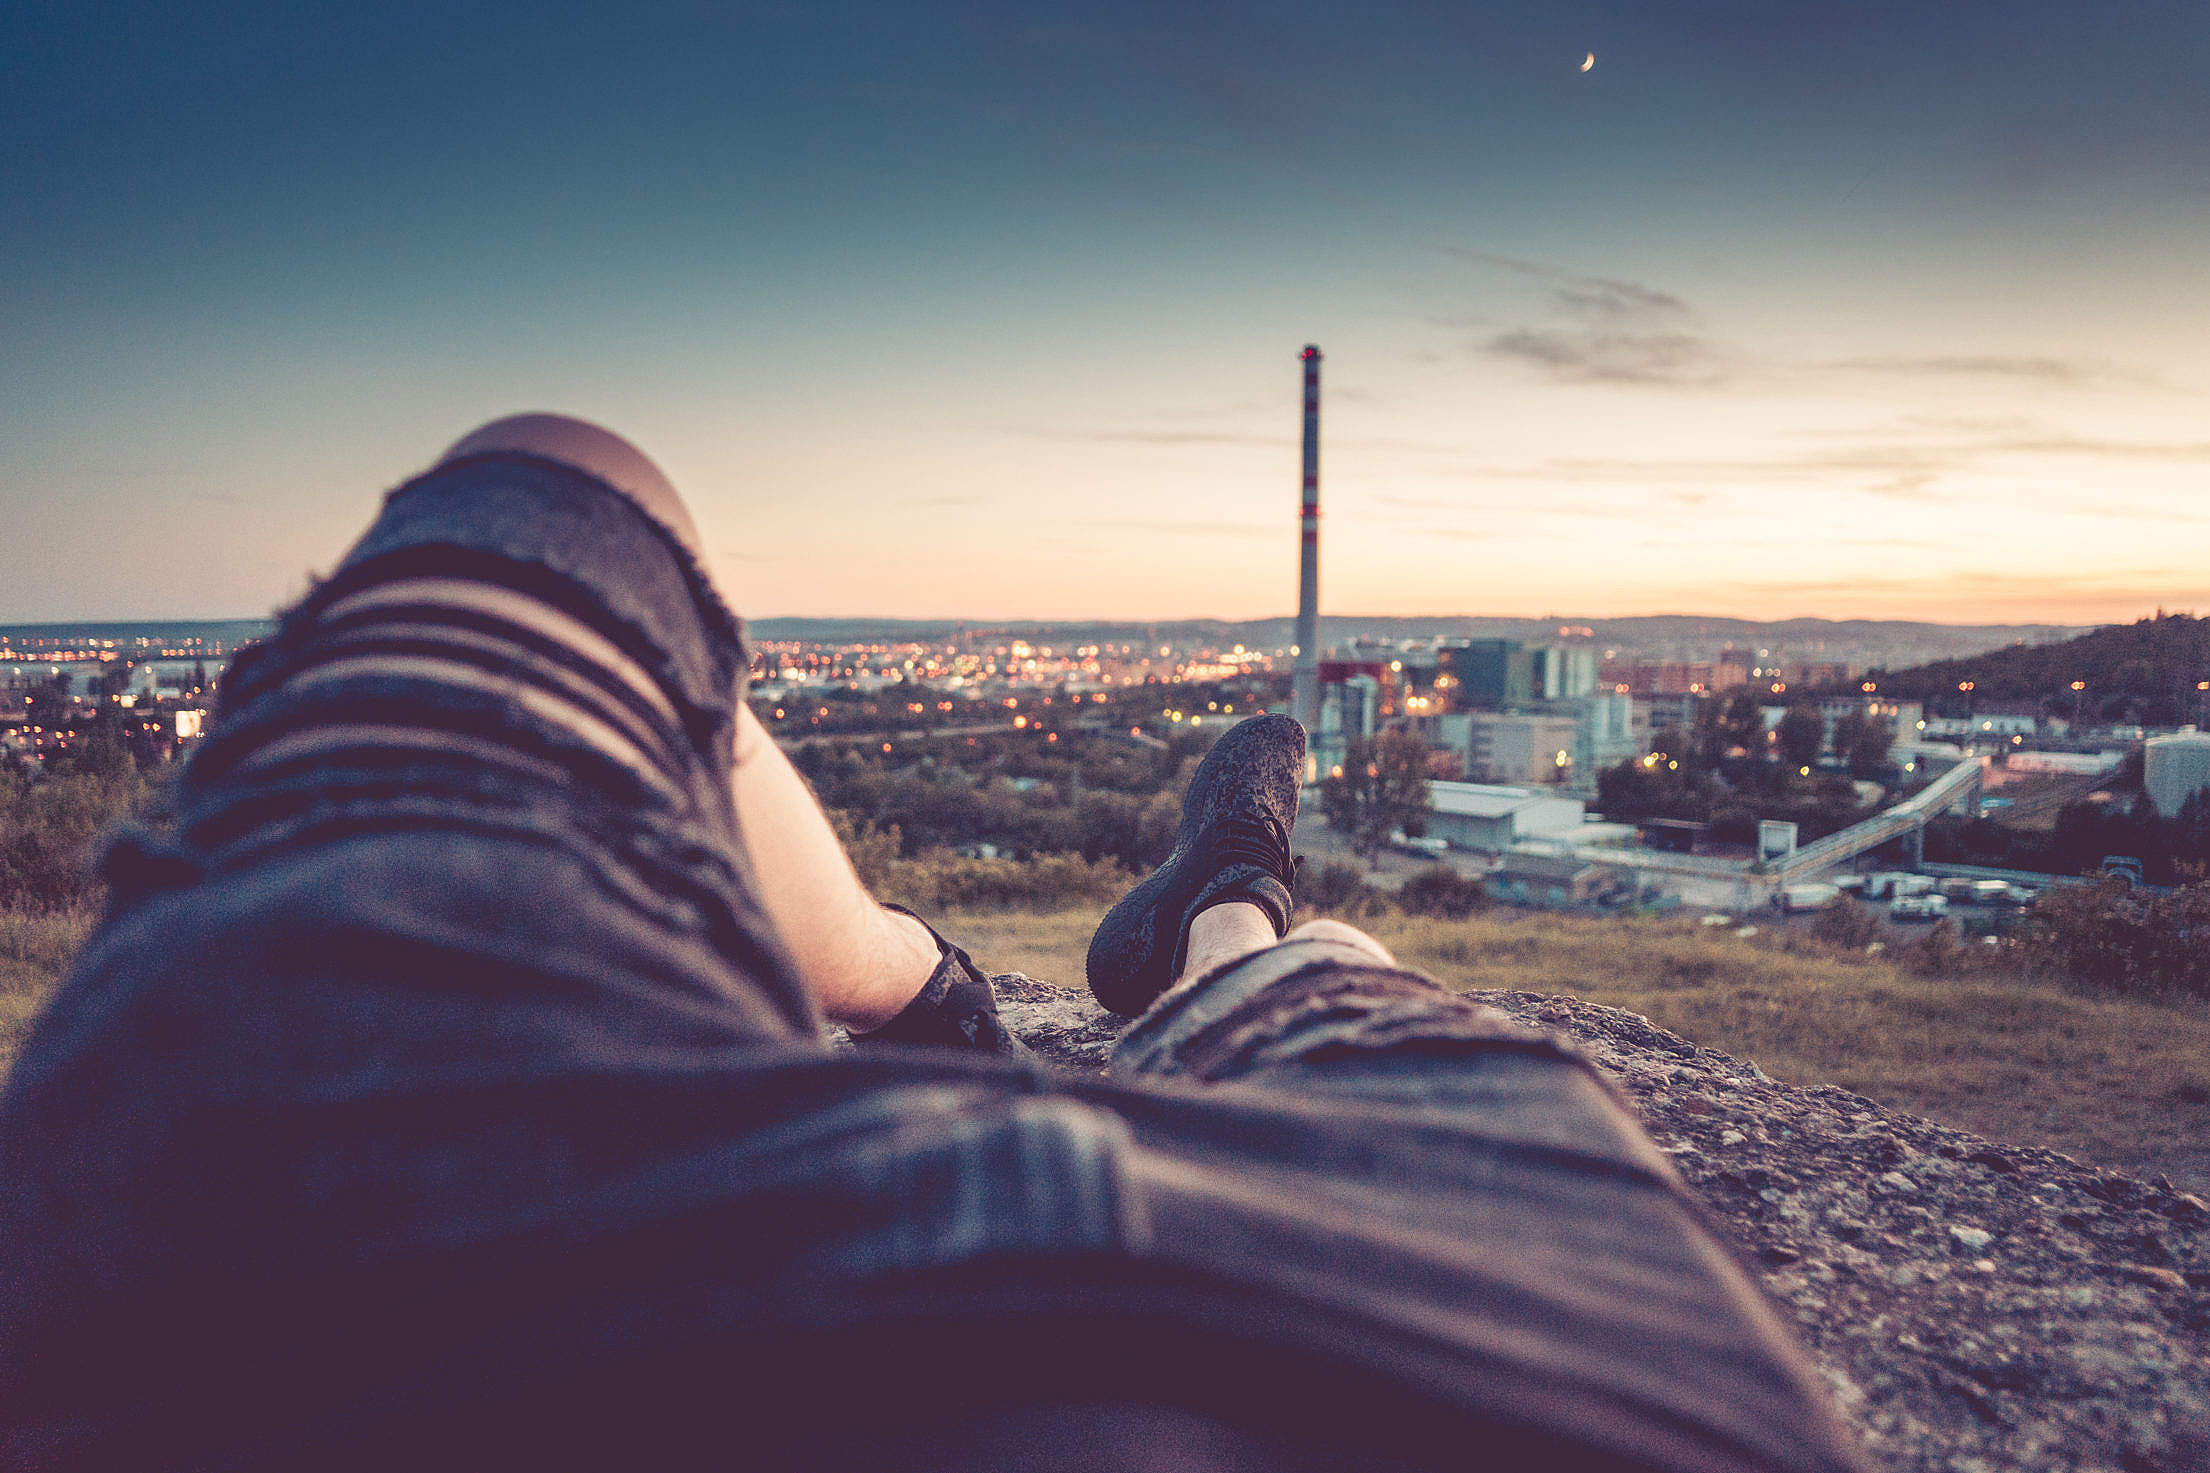 Young Man Chilling and Enjoying Evening Cityscape View Free Stock Photo